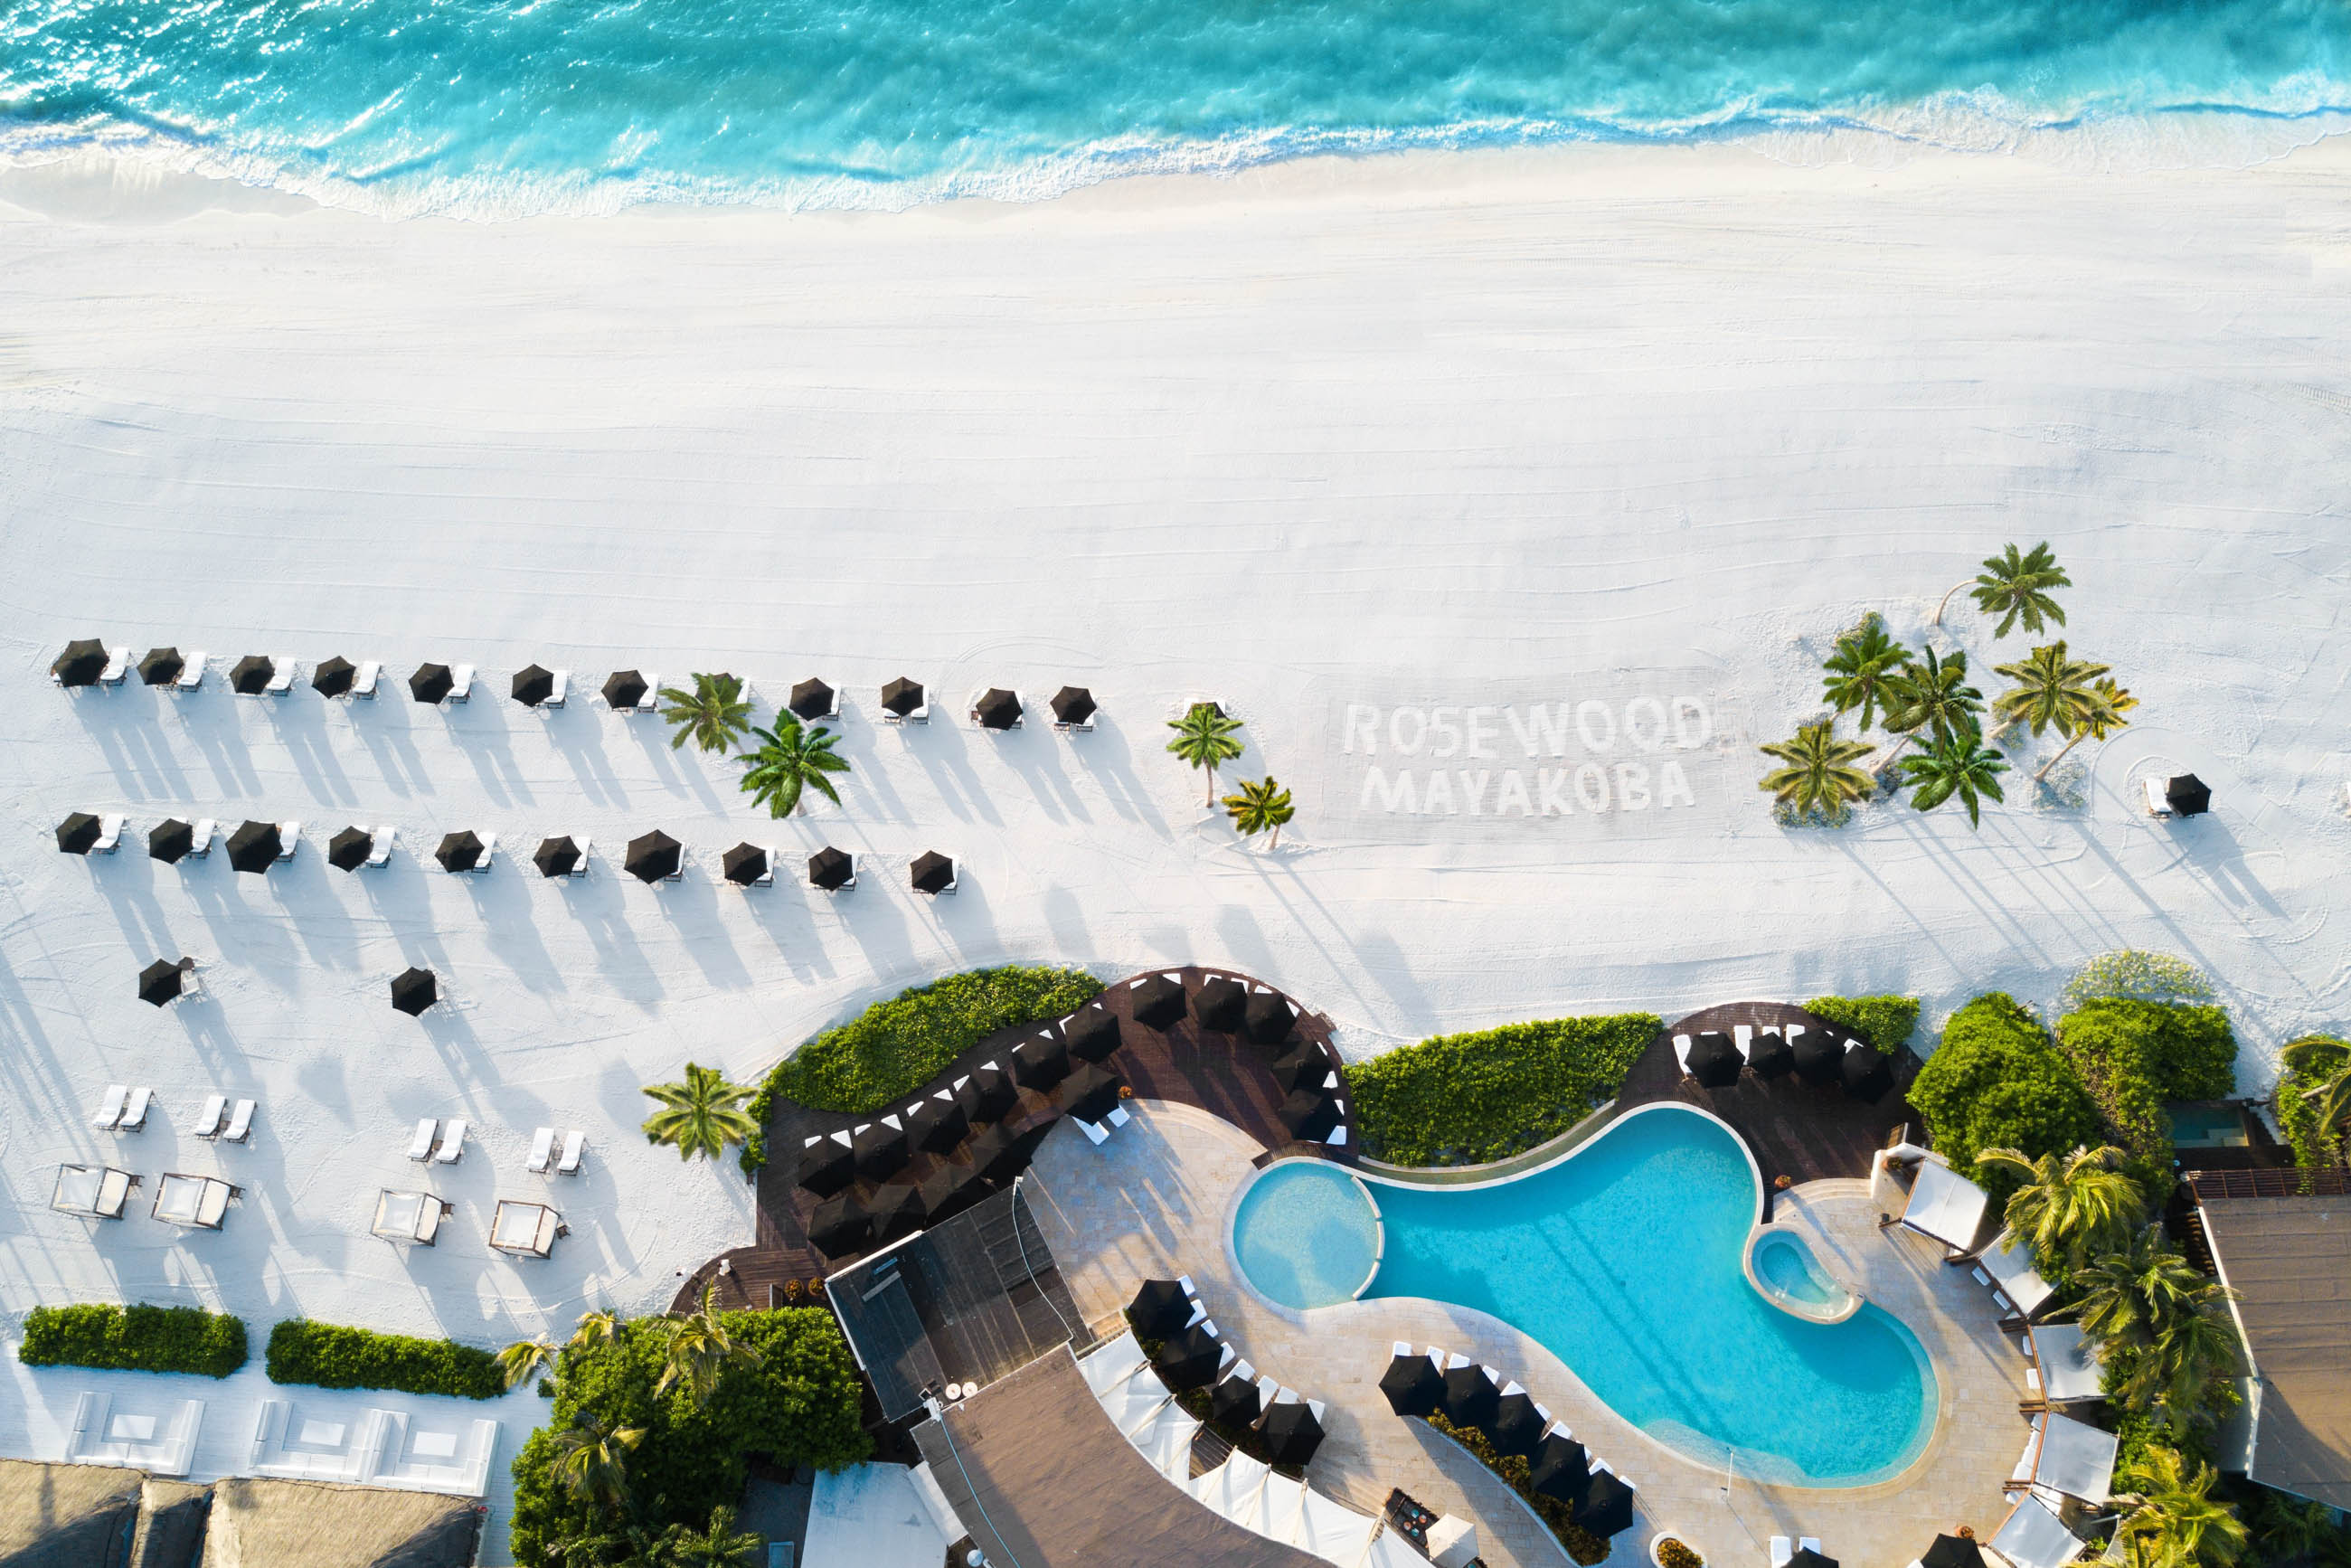 https://bubo.sk/uploads/galleries/7336/mayakoba_rosewood_dji_0042_o.jpg